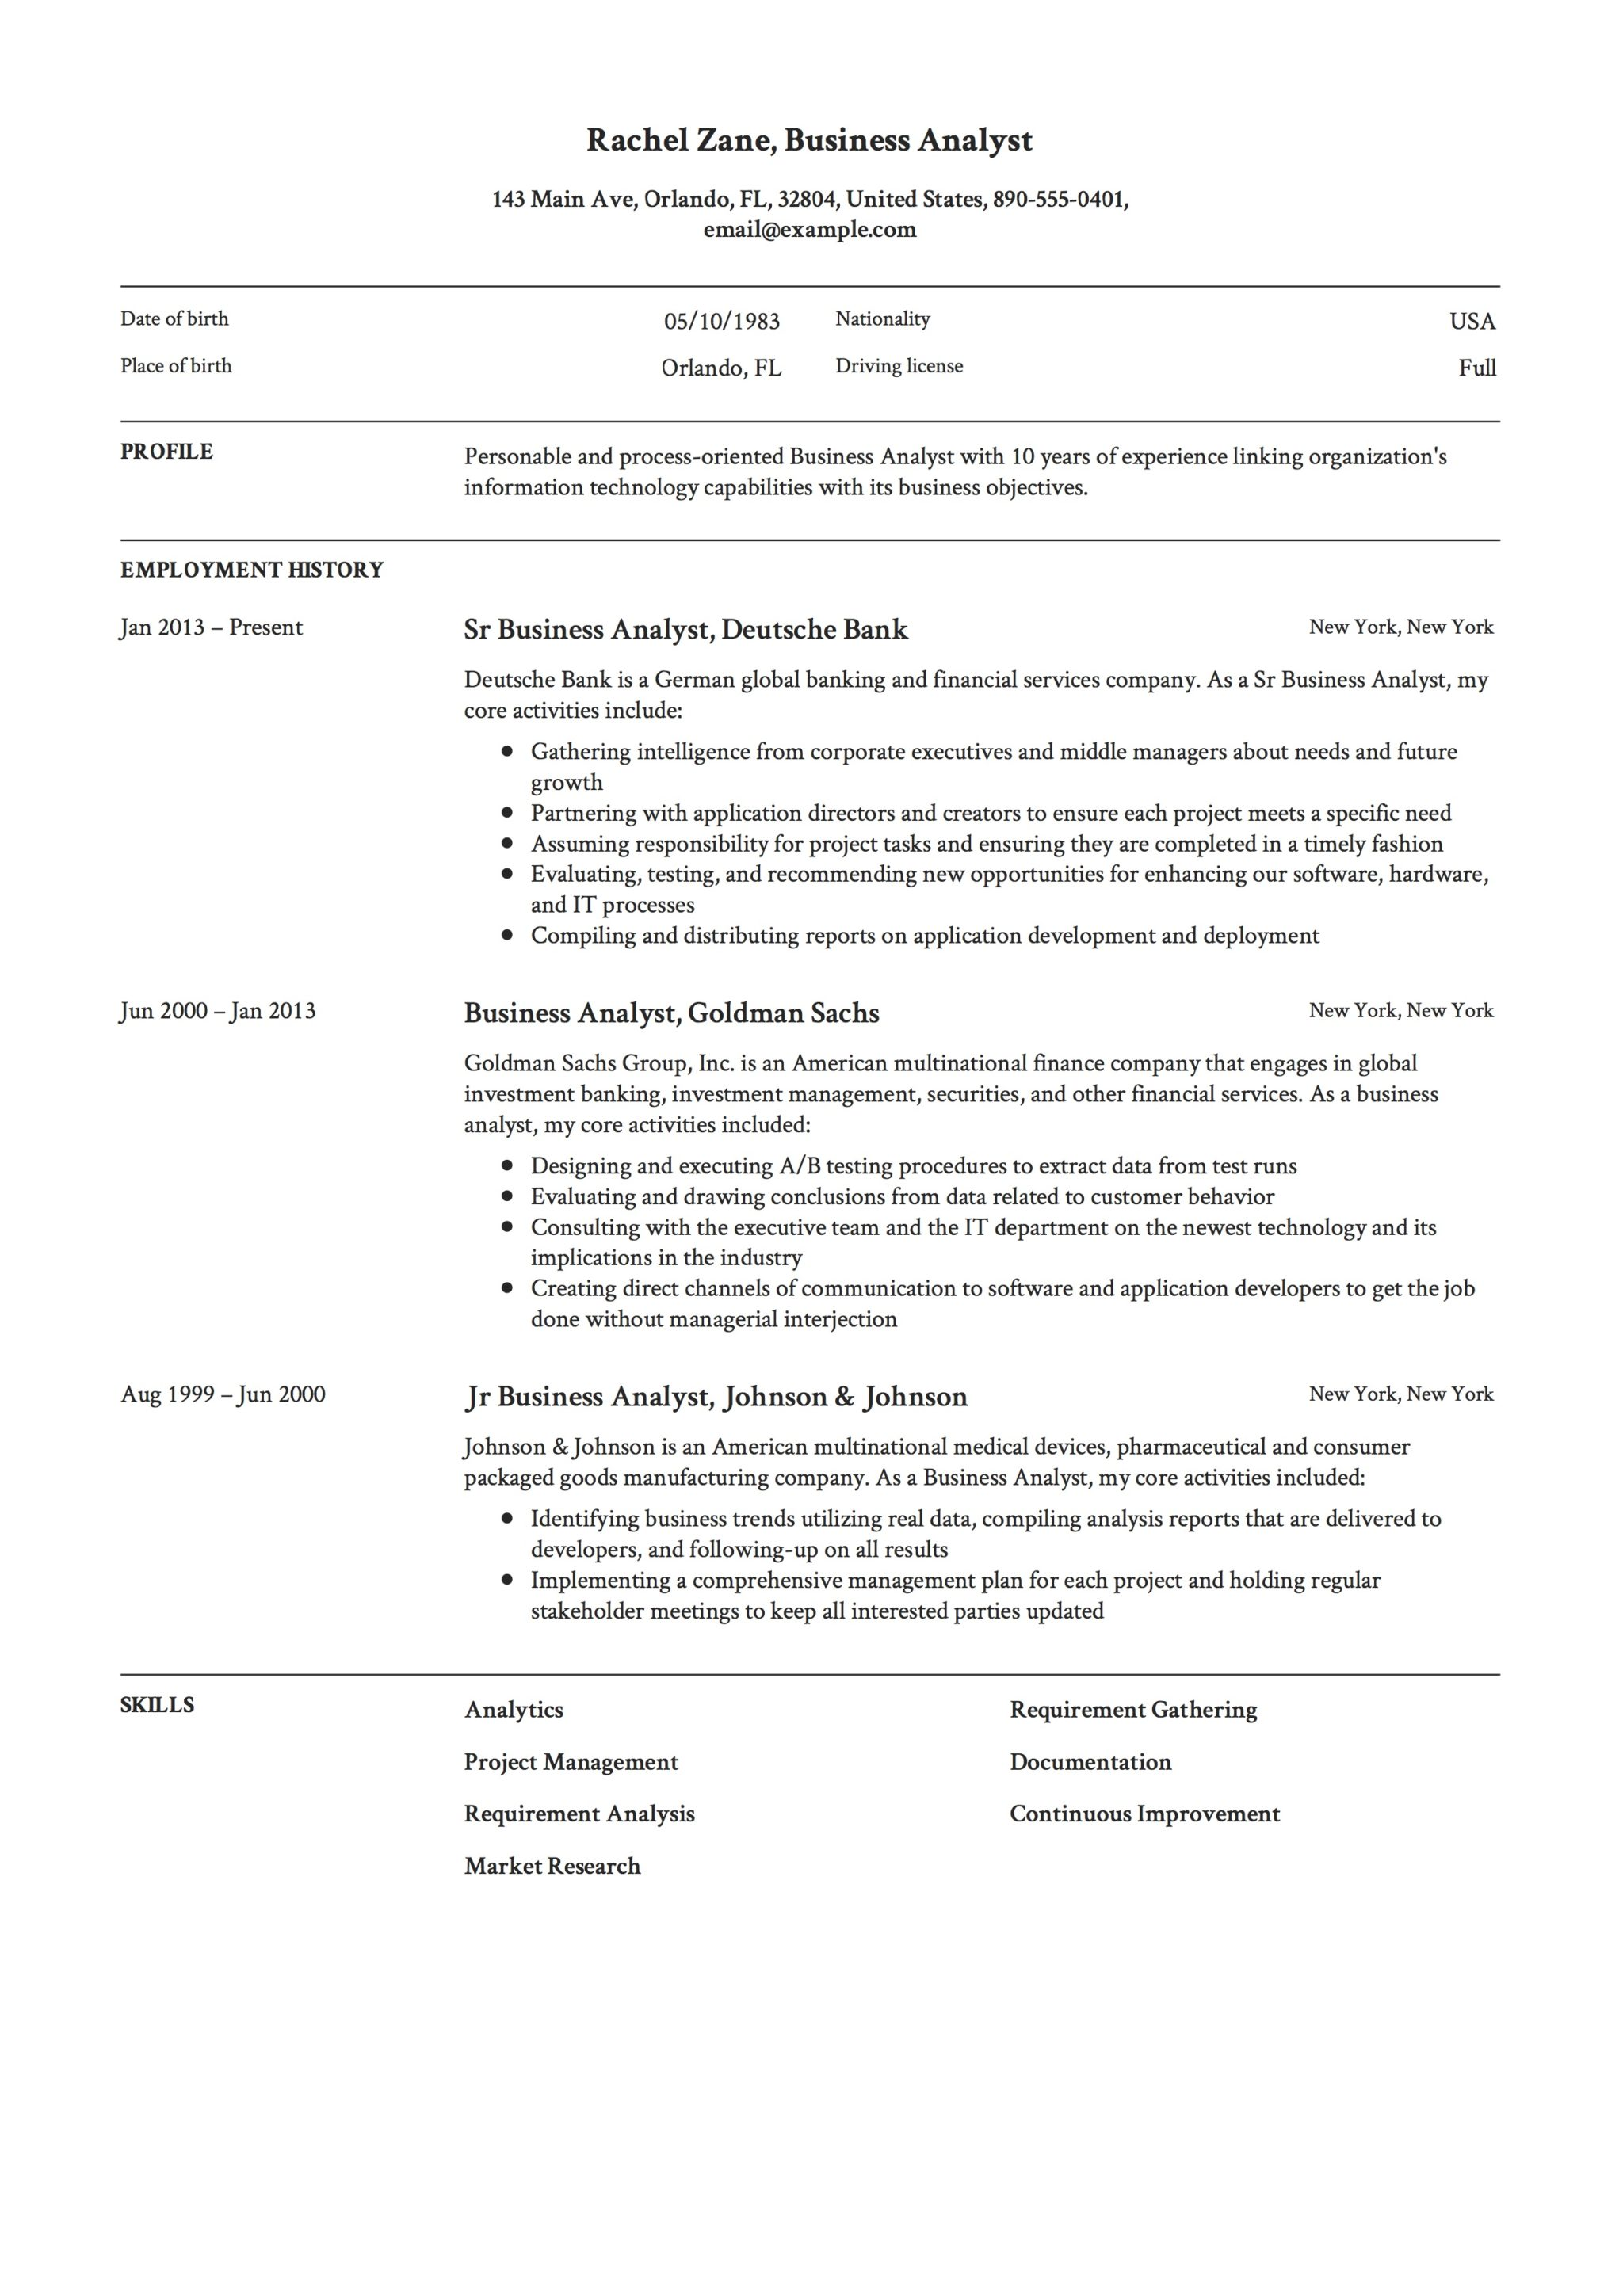 Philanthropy Resume Examples Full Guide Project Manager Resume 4312 Samples Word